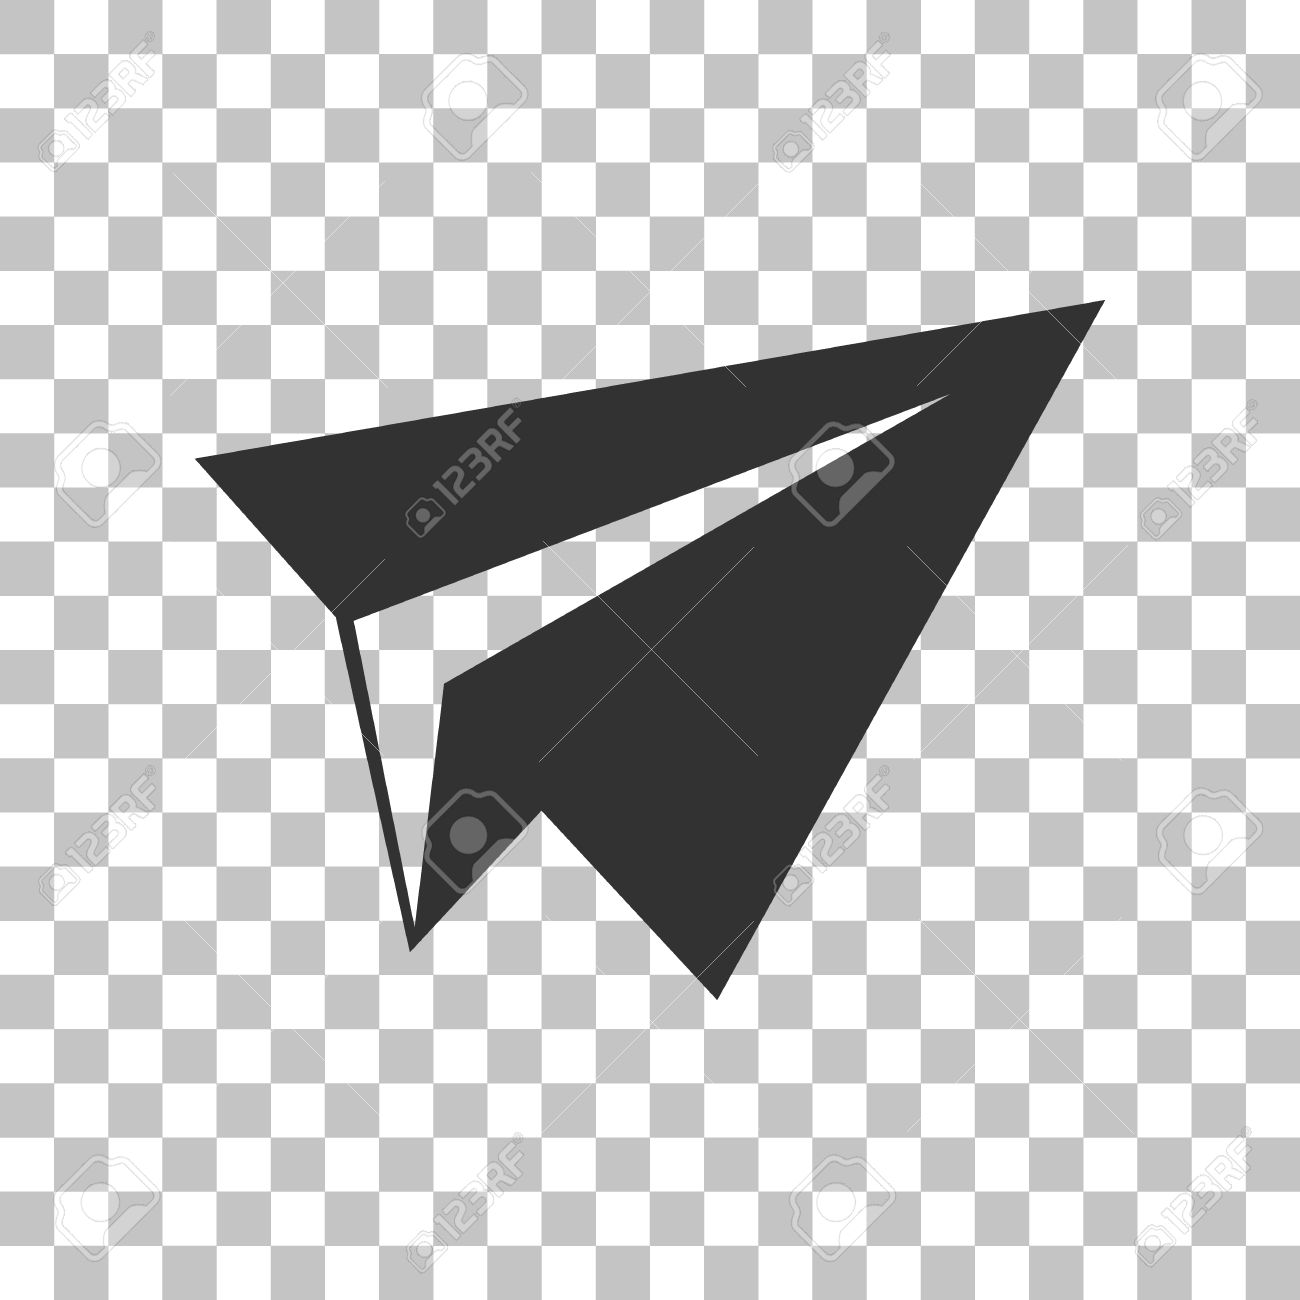 Paper airplane sign dark gray icon on transparent background paper airplane sign dark gray icon on transparent background stock vector 59147802 malvernweather Gallery